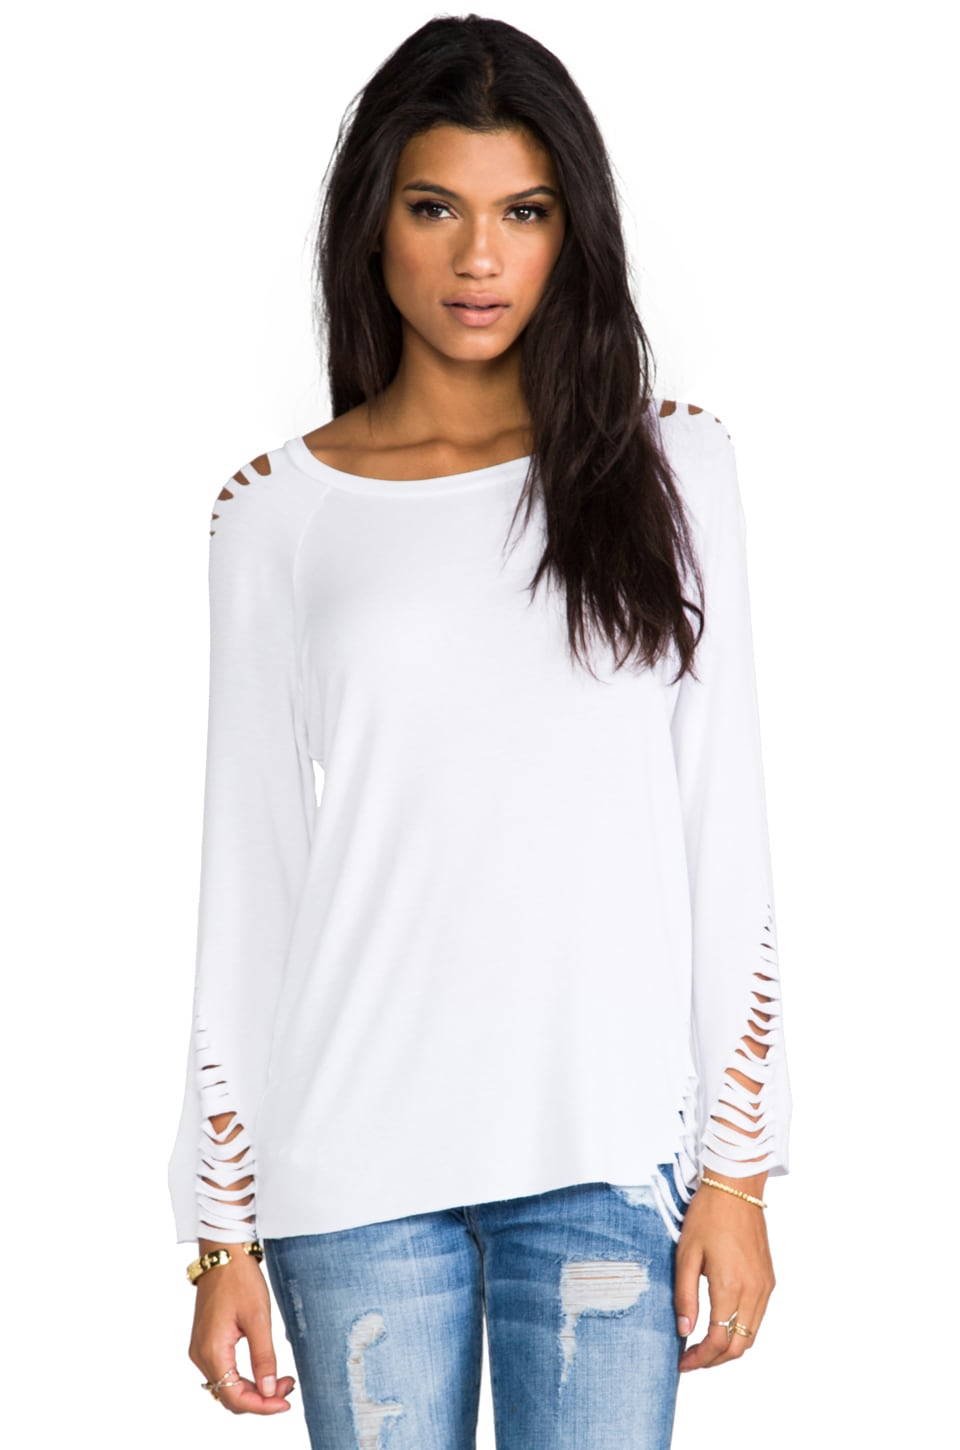 Blue Life Shredded Crew Top in Winter White